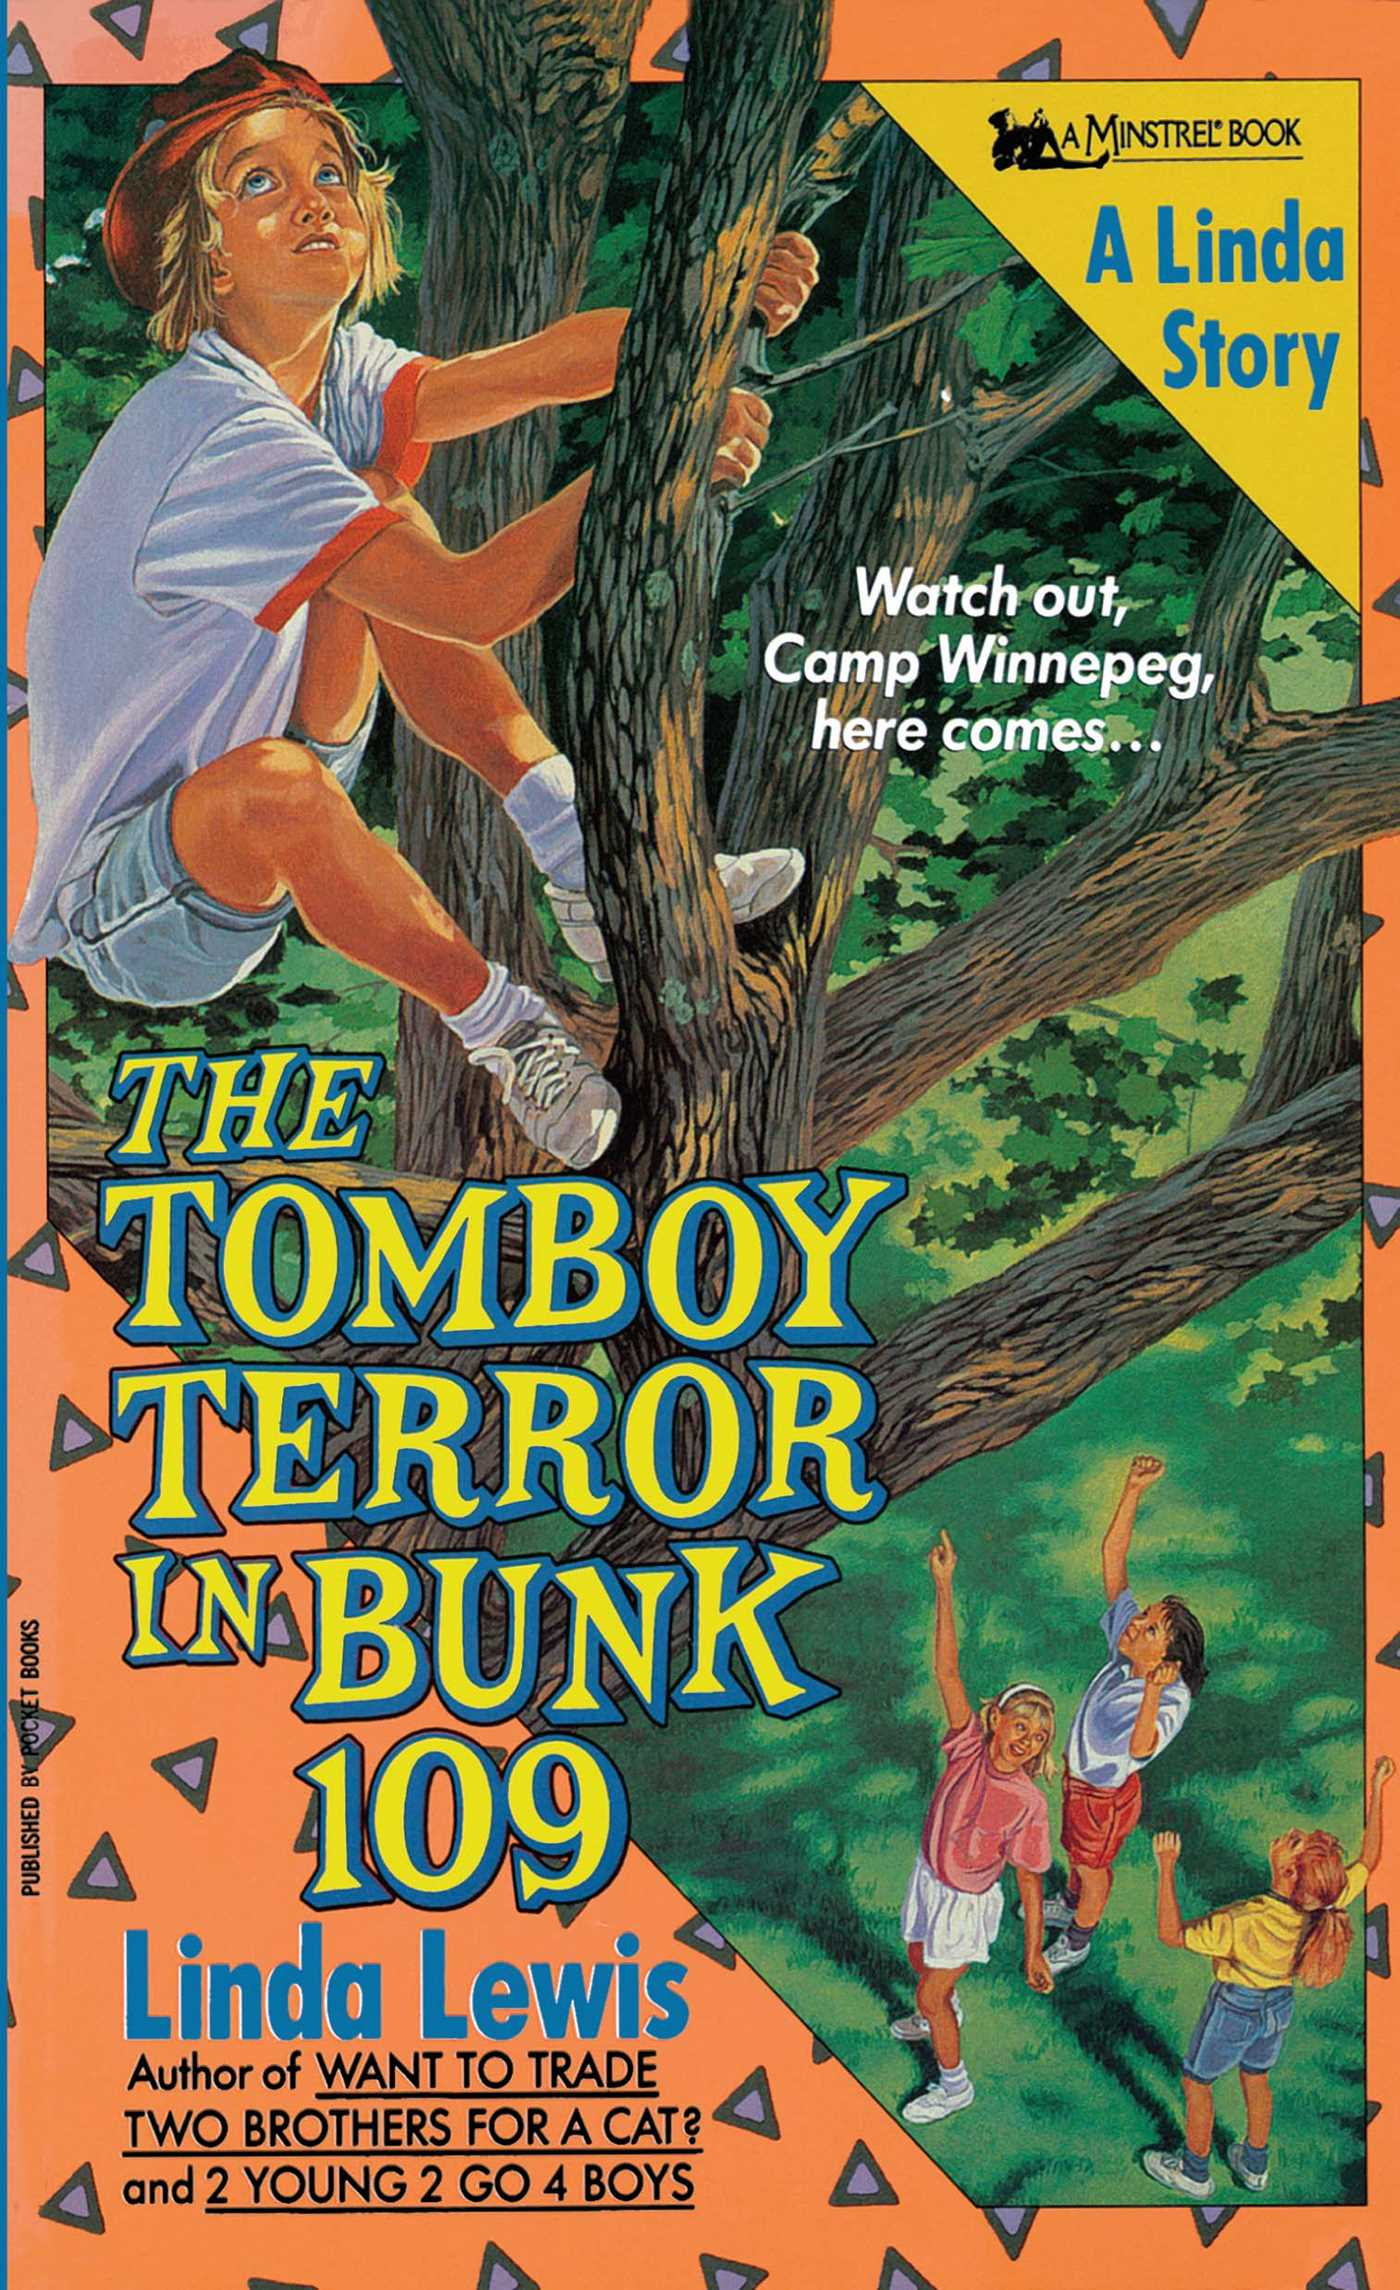 Tomboy-terror-in-bunk-109-9781416975397_hr